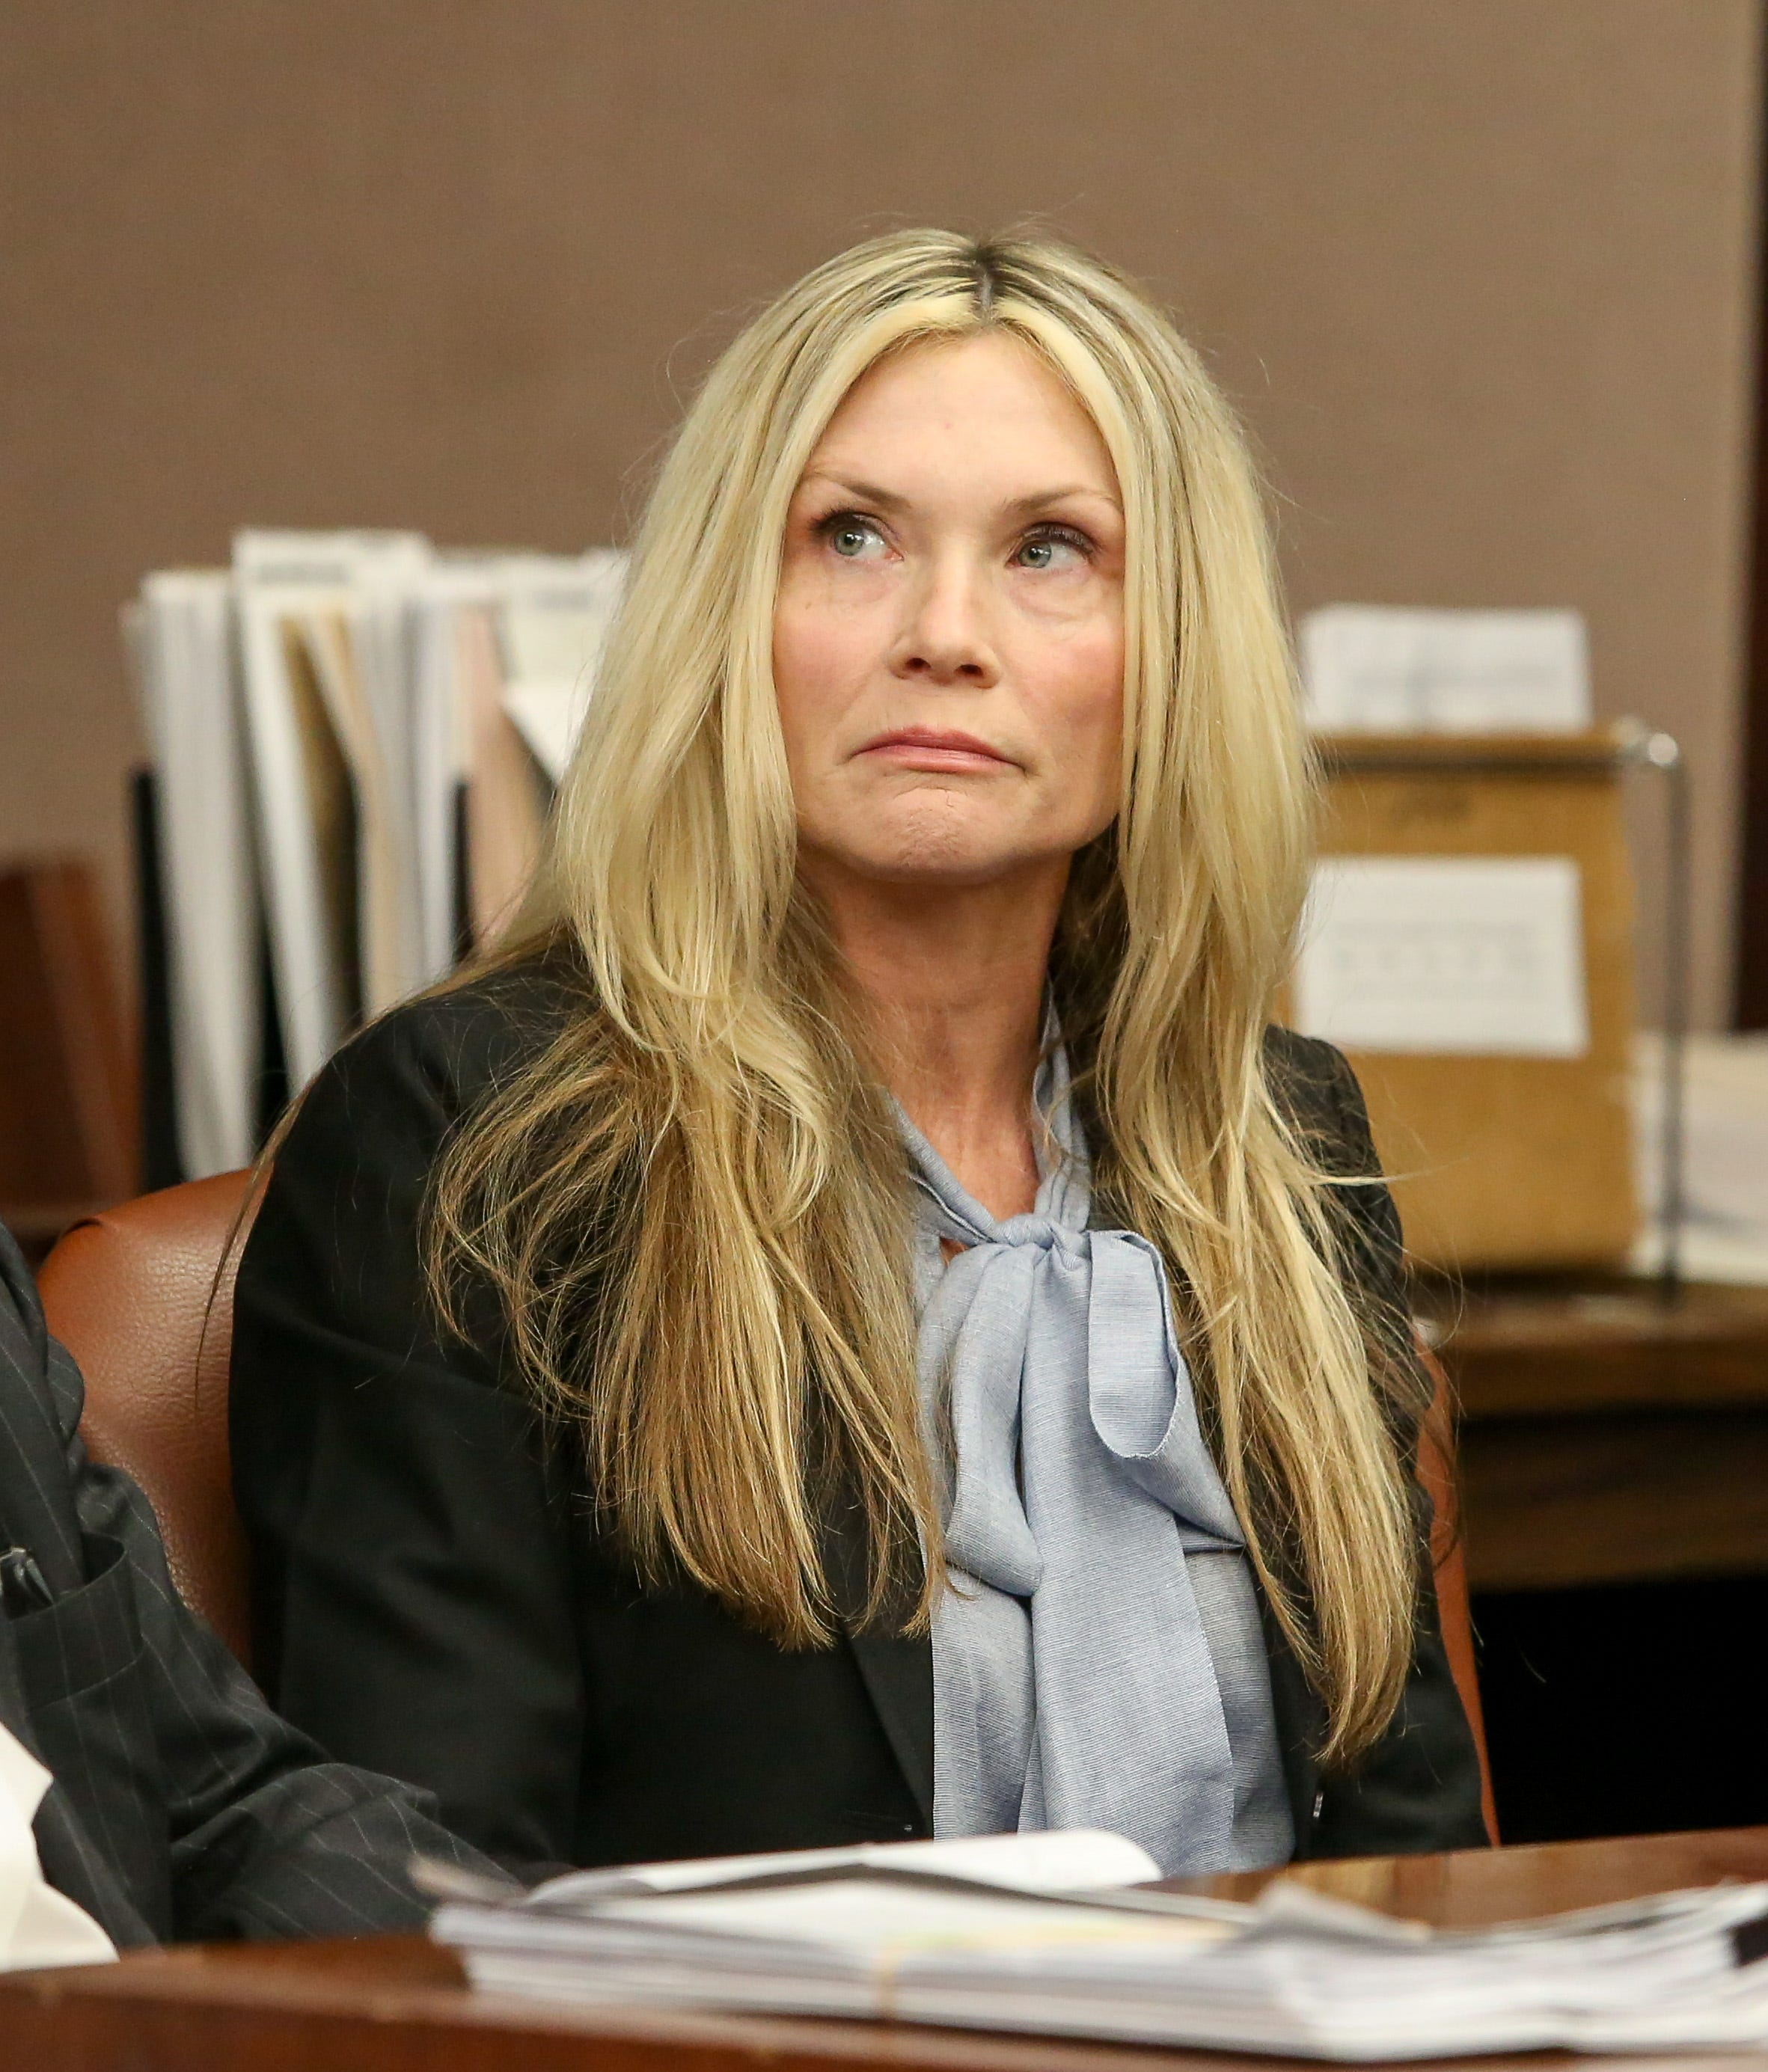 Amy Locane Melrose Place Pictures 'melrose place' actress amy locane given more jail